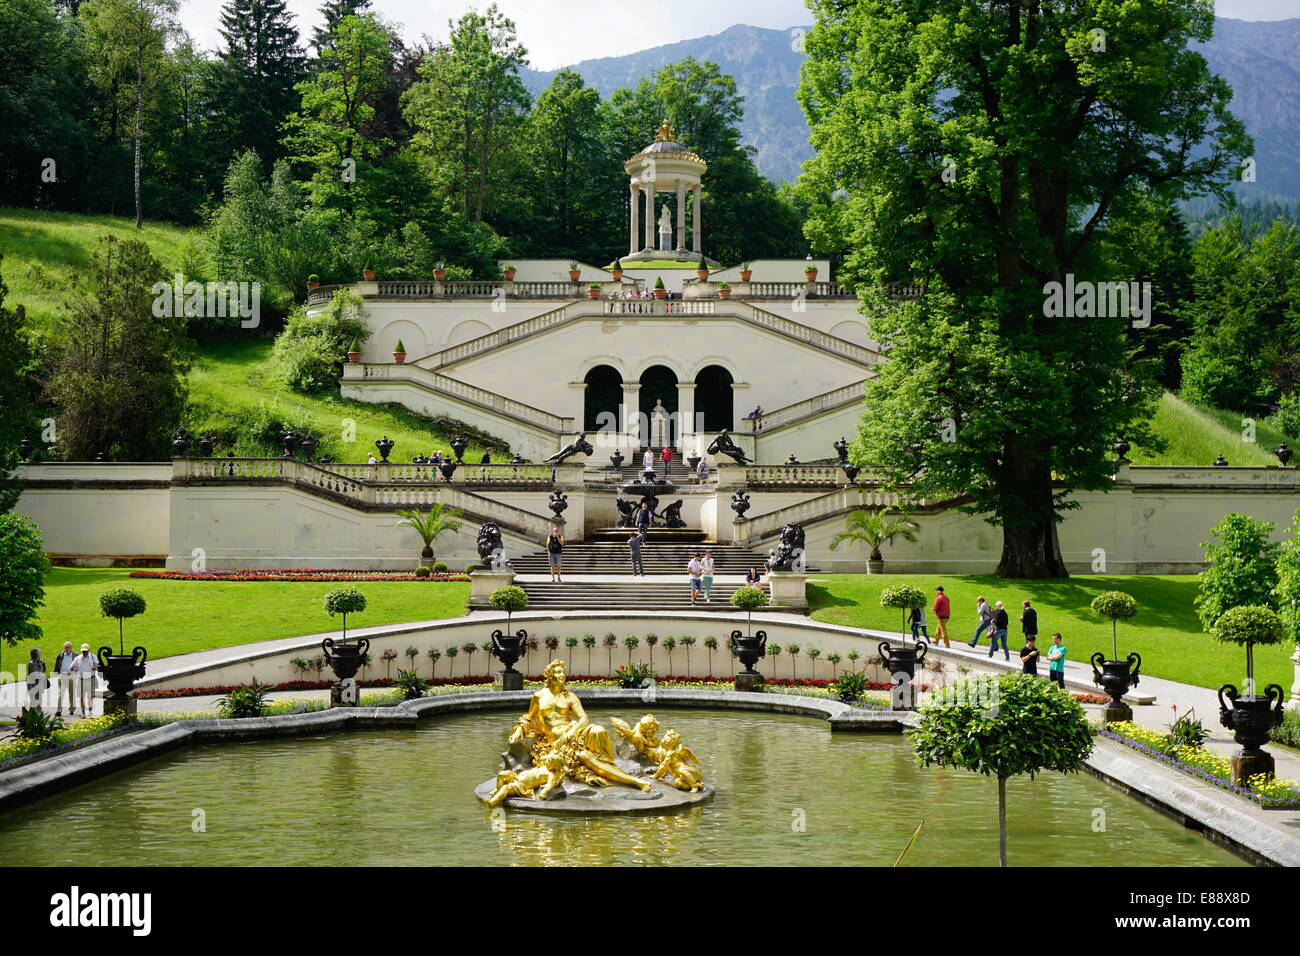 Gardens at the Palace of Linderhof, King Ludwig the Second's royal villa, Bavaria, Germany, Europe - Stock Image